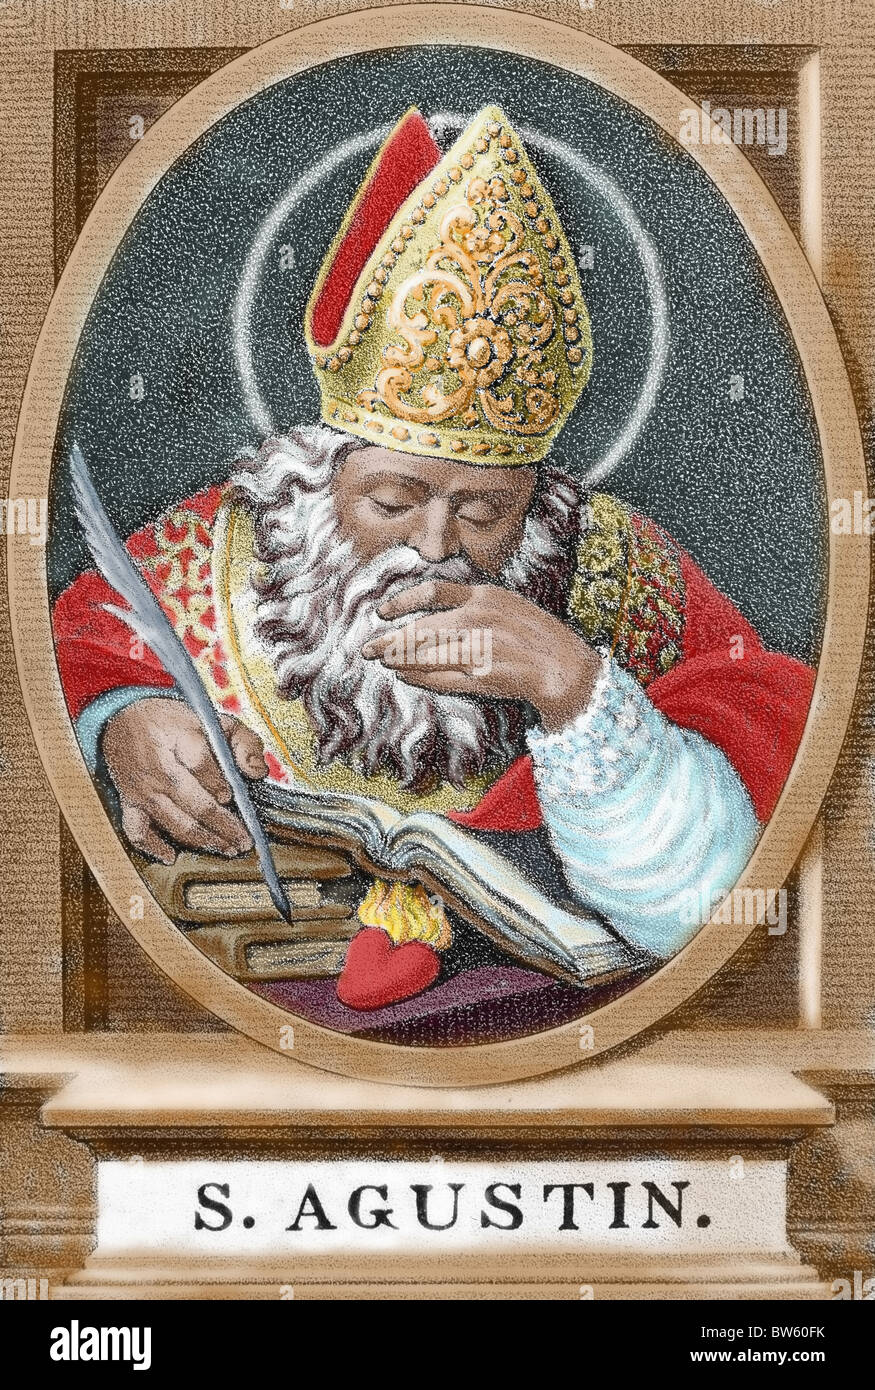 St. Augustine (354-430). African bishop, doctor and father of the church. Colored engraving. Stock Photo